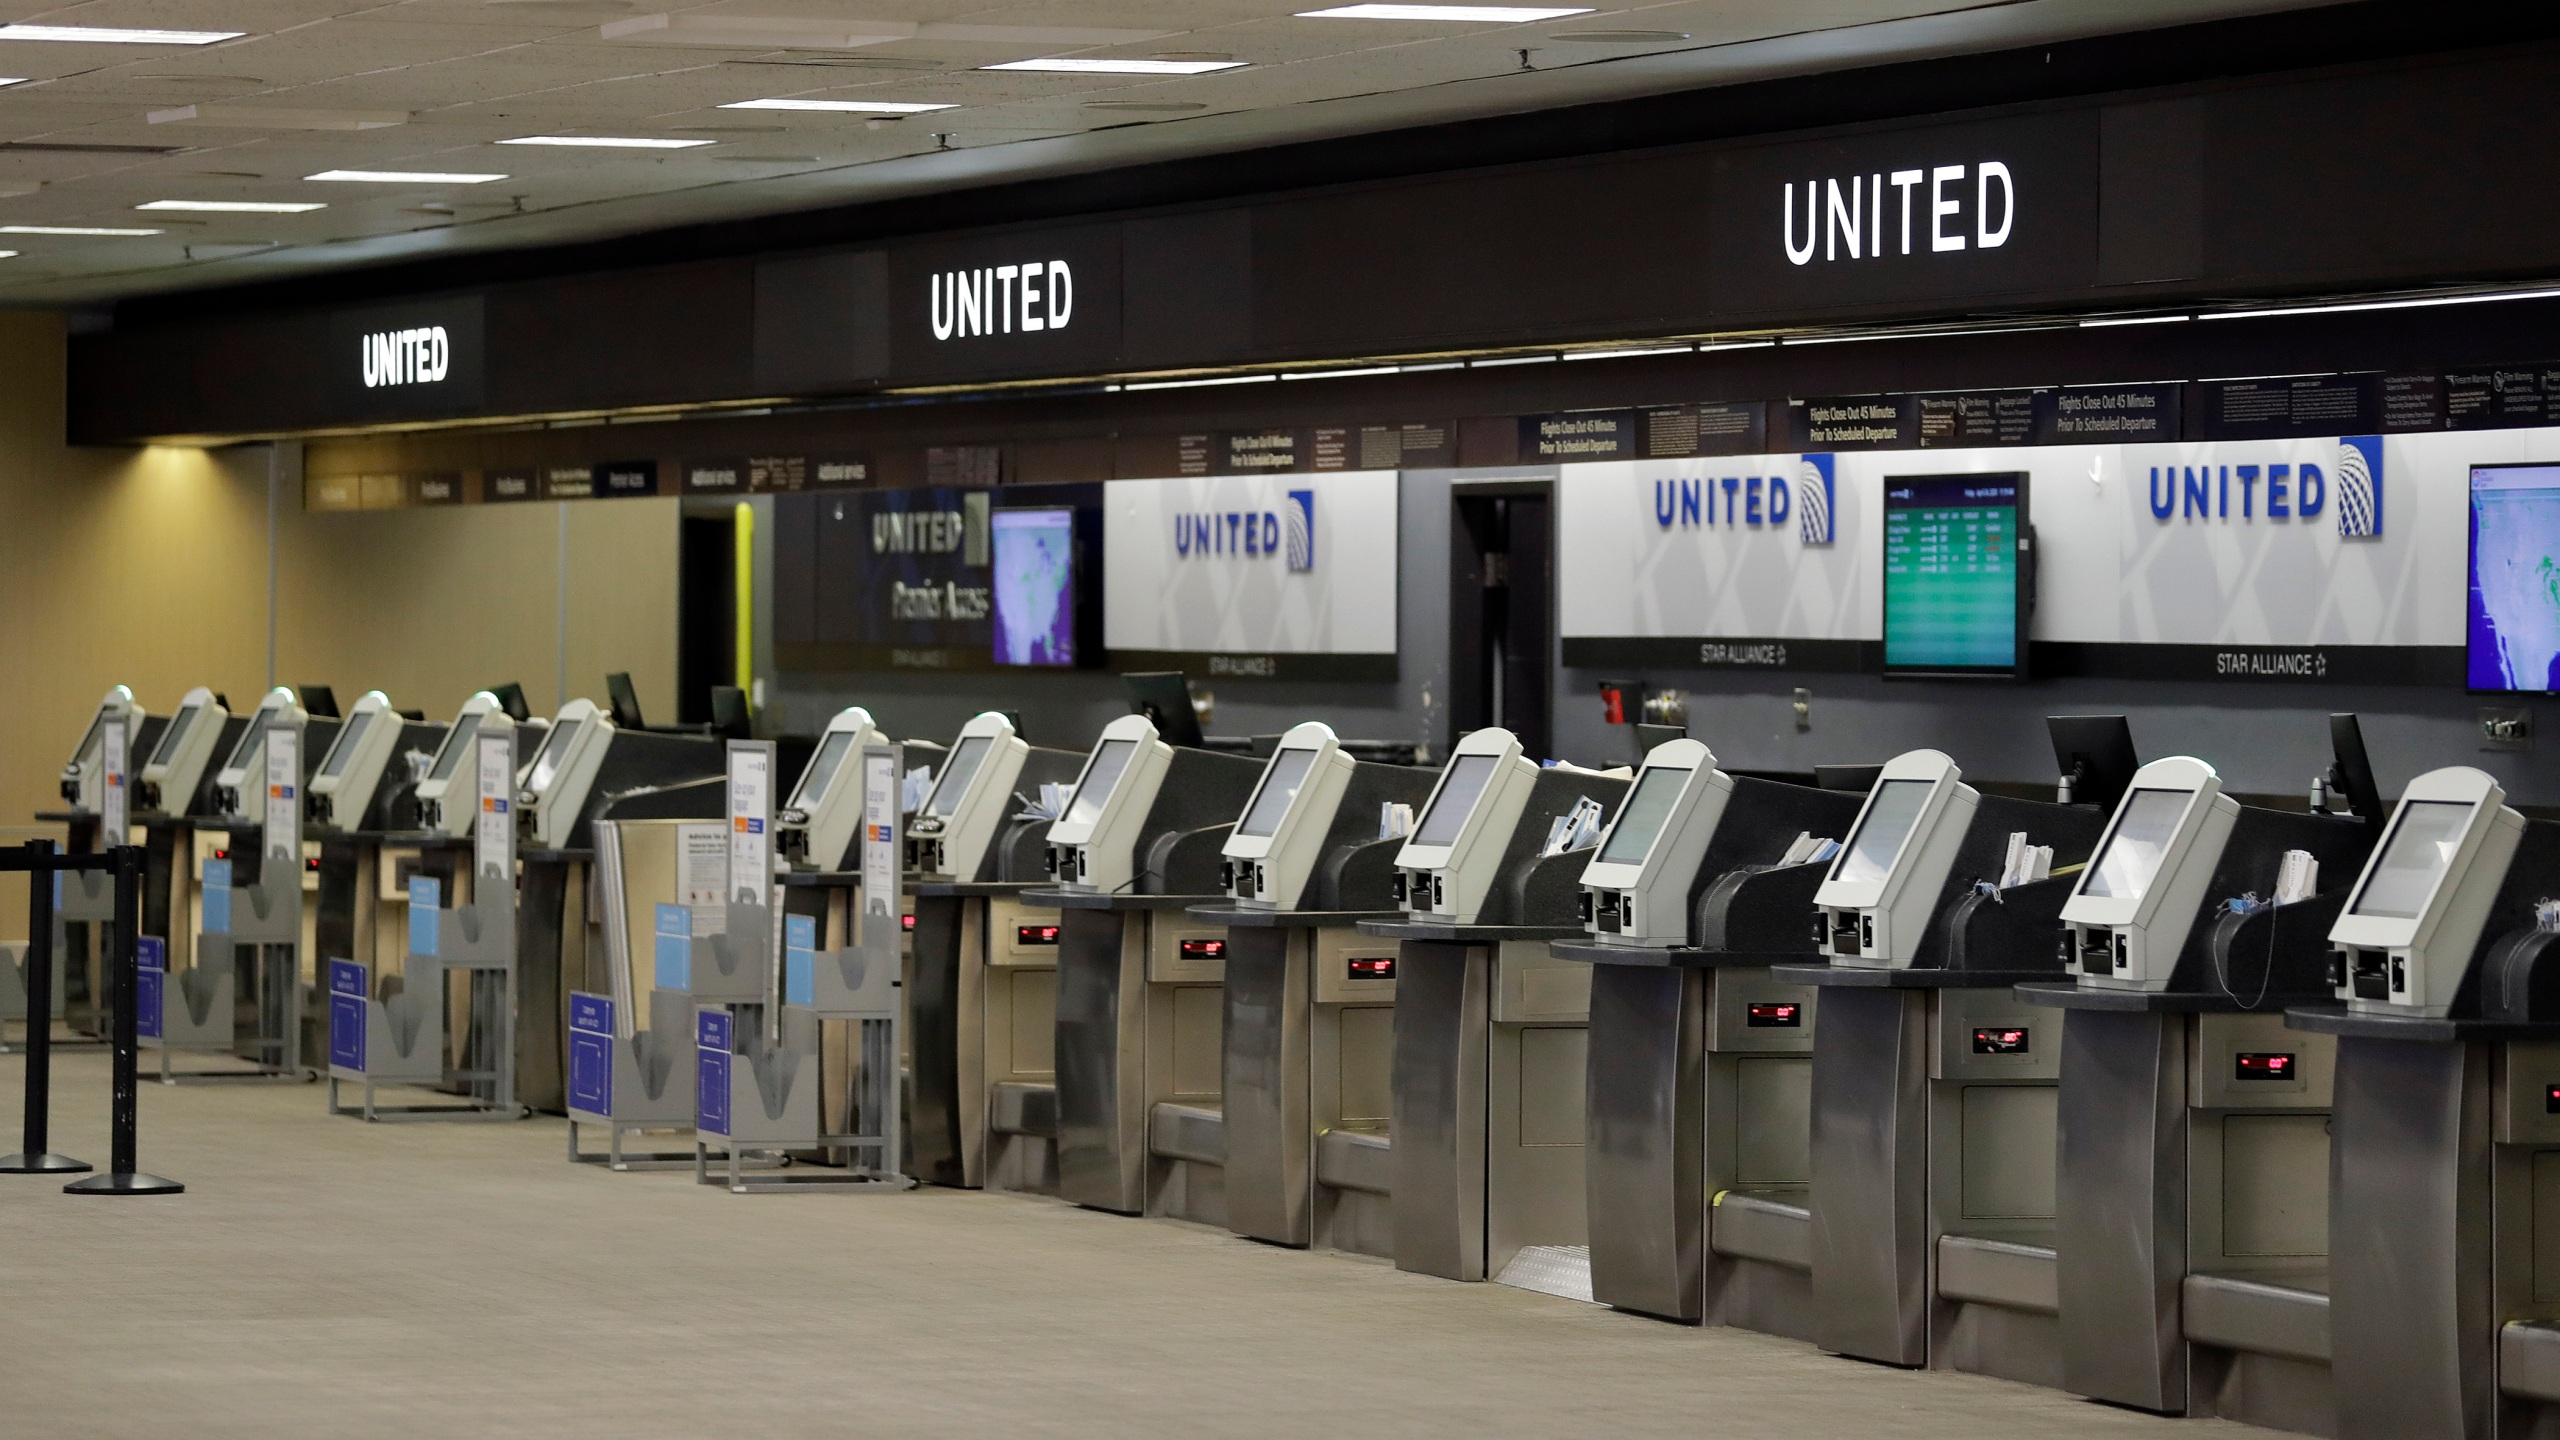 In this April 24, 2020 file photo, empty United Airlines ticket machines are shown at the Tampa International Airport in Tampa, Fla. United United Airlines will send layoff warnings to 36,000 employees - nearly half its U.S. staff - in the clearest signal yet of how deeply the virus outbreak is hurting the airline industry. (AP Photo/Chris O'Meara, File)